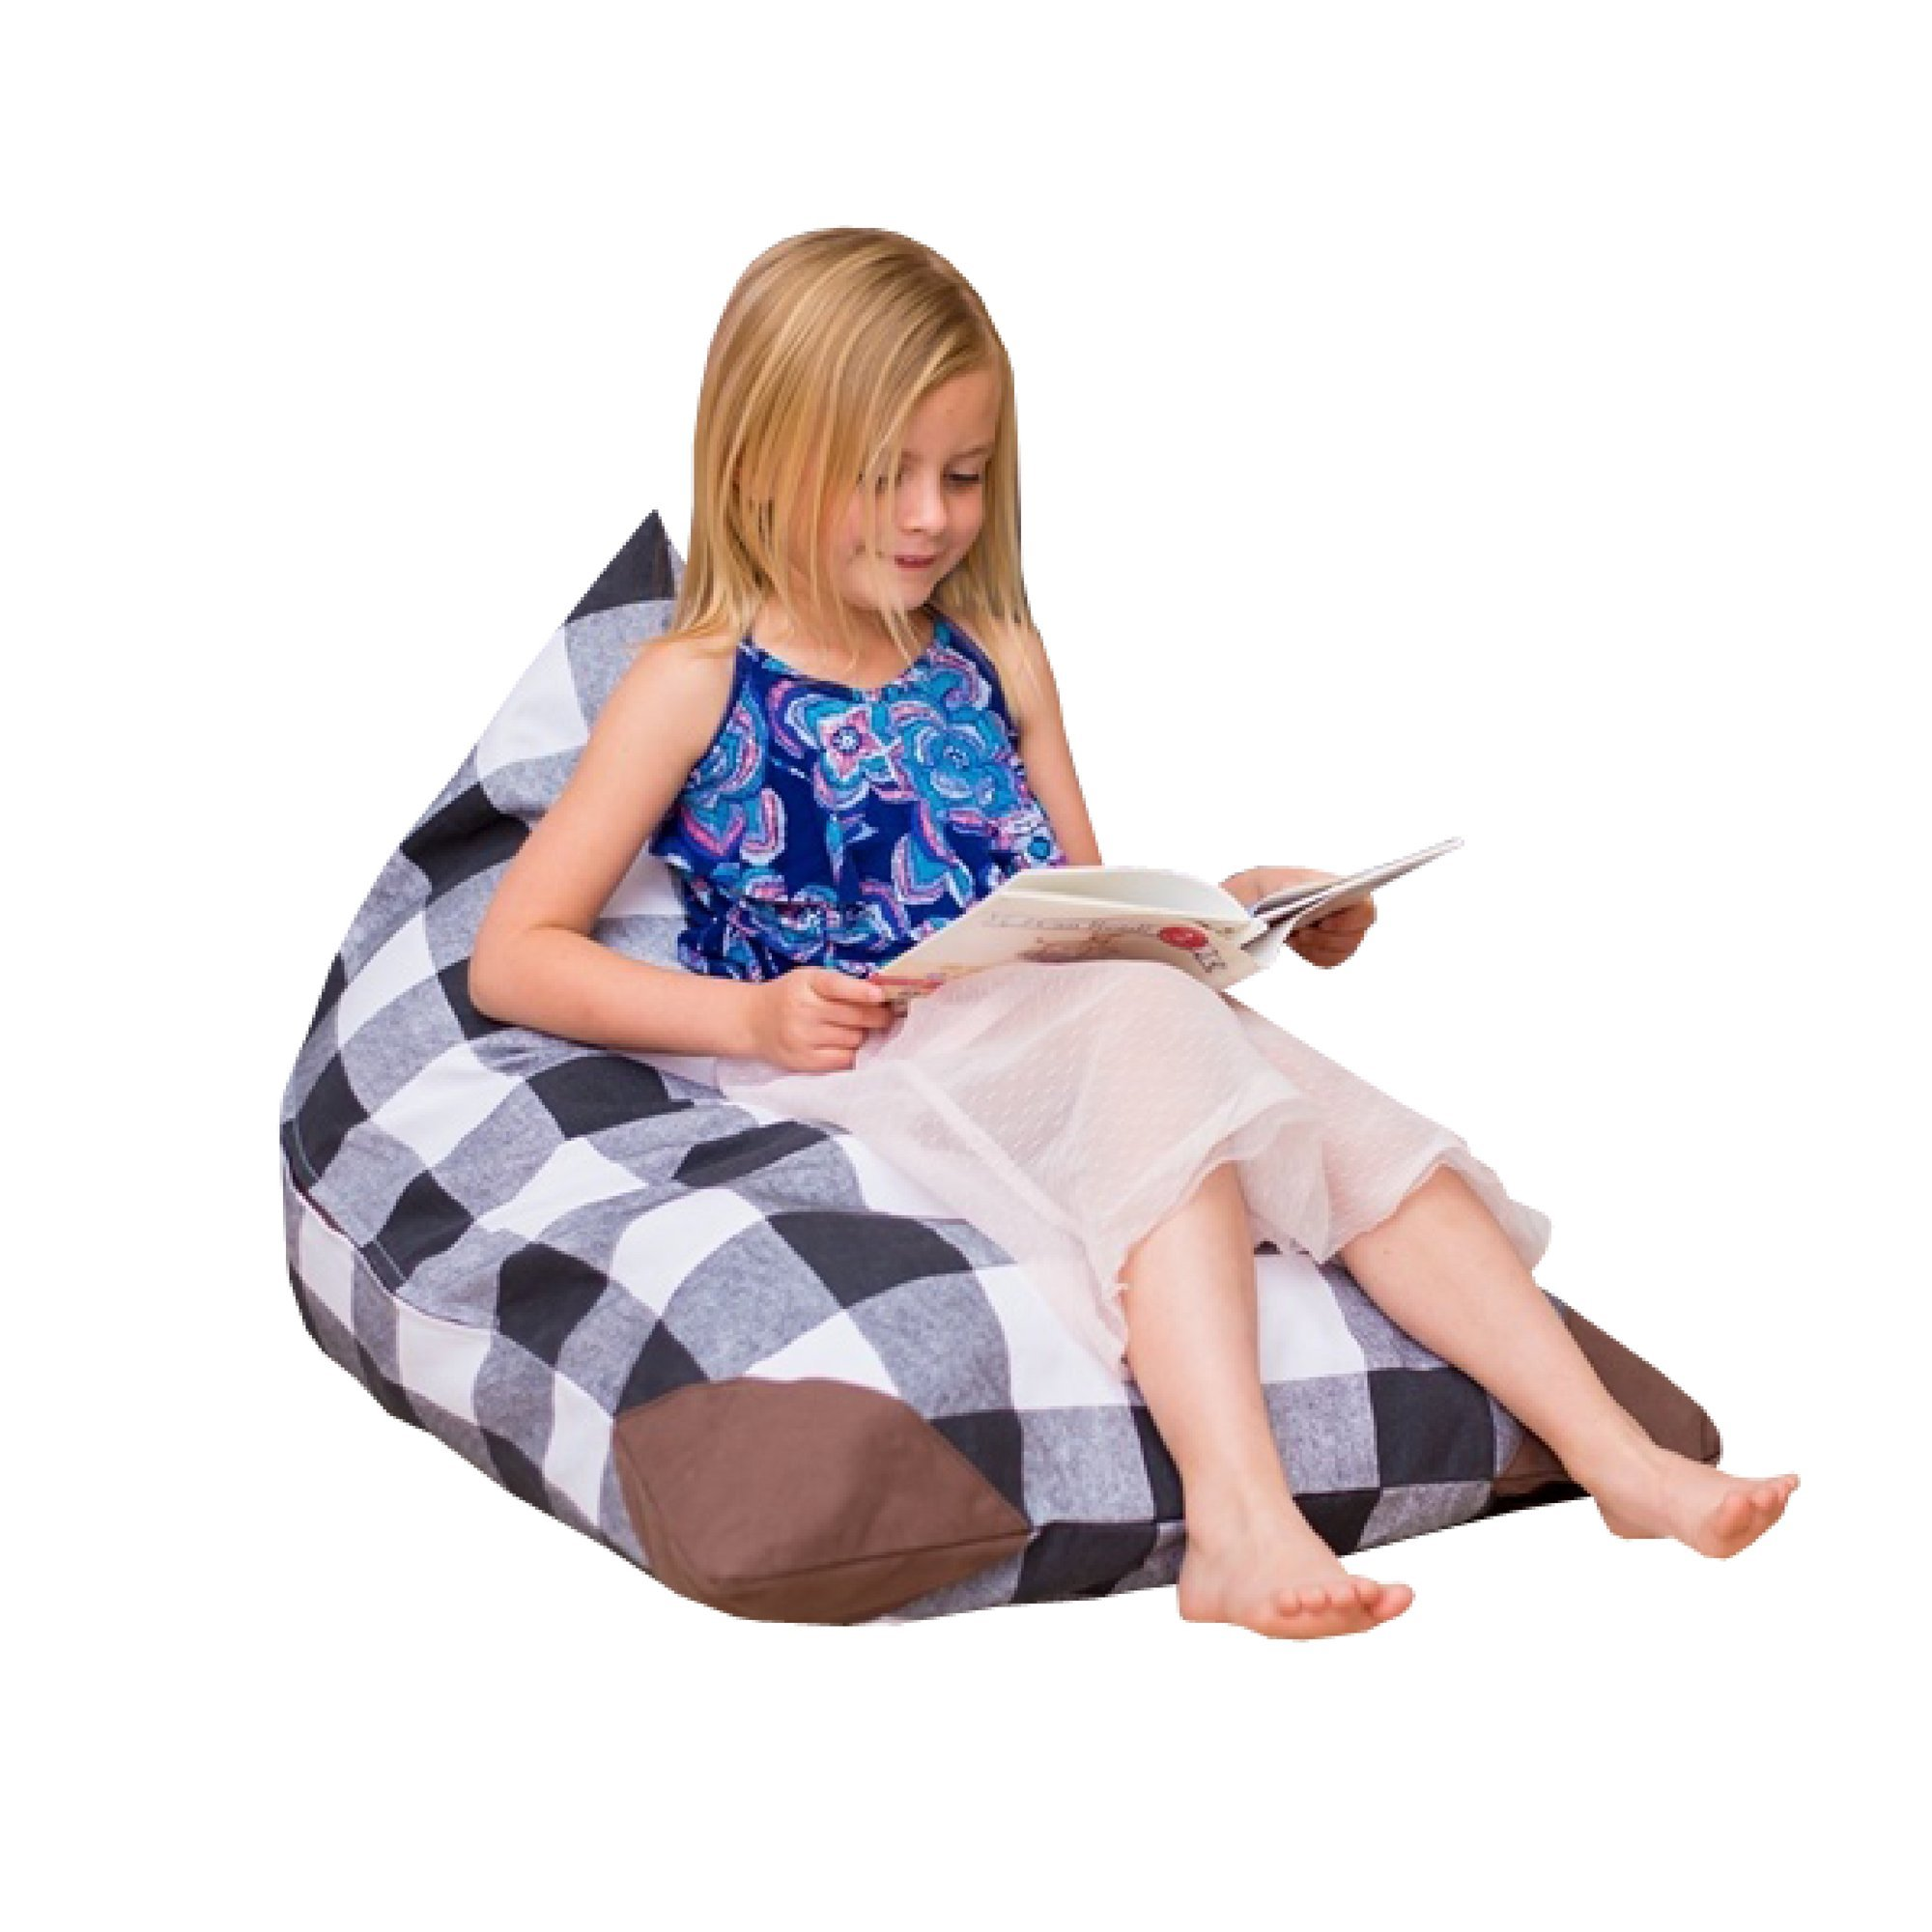 Stuffed Animal Storage Bean Bag Chair Cover For Kids-Plush Toy Organization For Toddler's Room Playroom | Sleeping Bag | Soft And Comfortable Bean Bag Bed | Easy Carrying Plaid For Boys and Girls